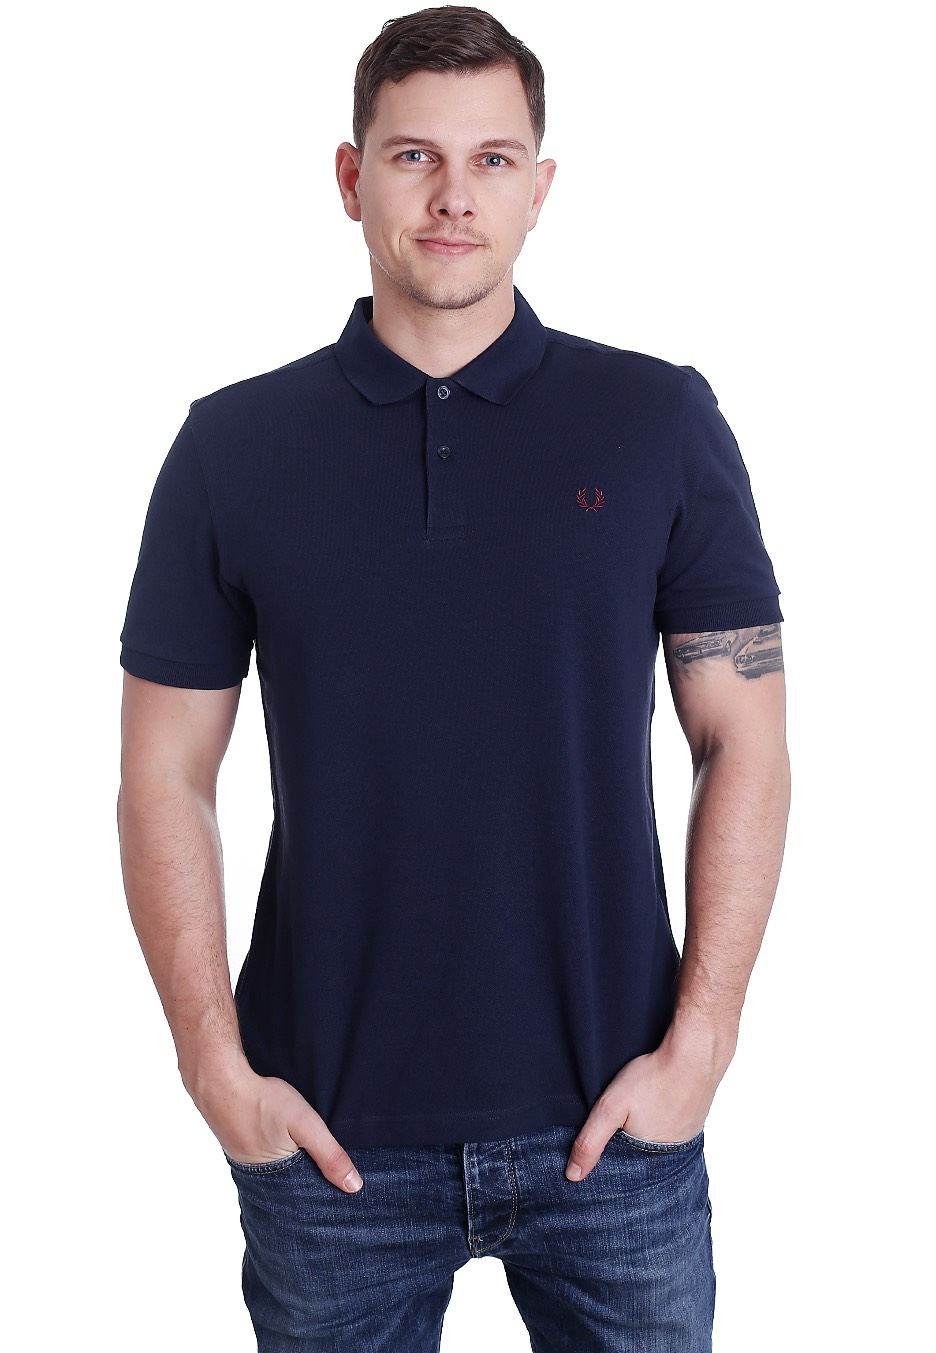 fred perry plain fred perry carbon blue polo. Black Bedroom Furniture Sets. Home Design Ideas